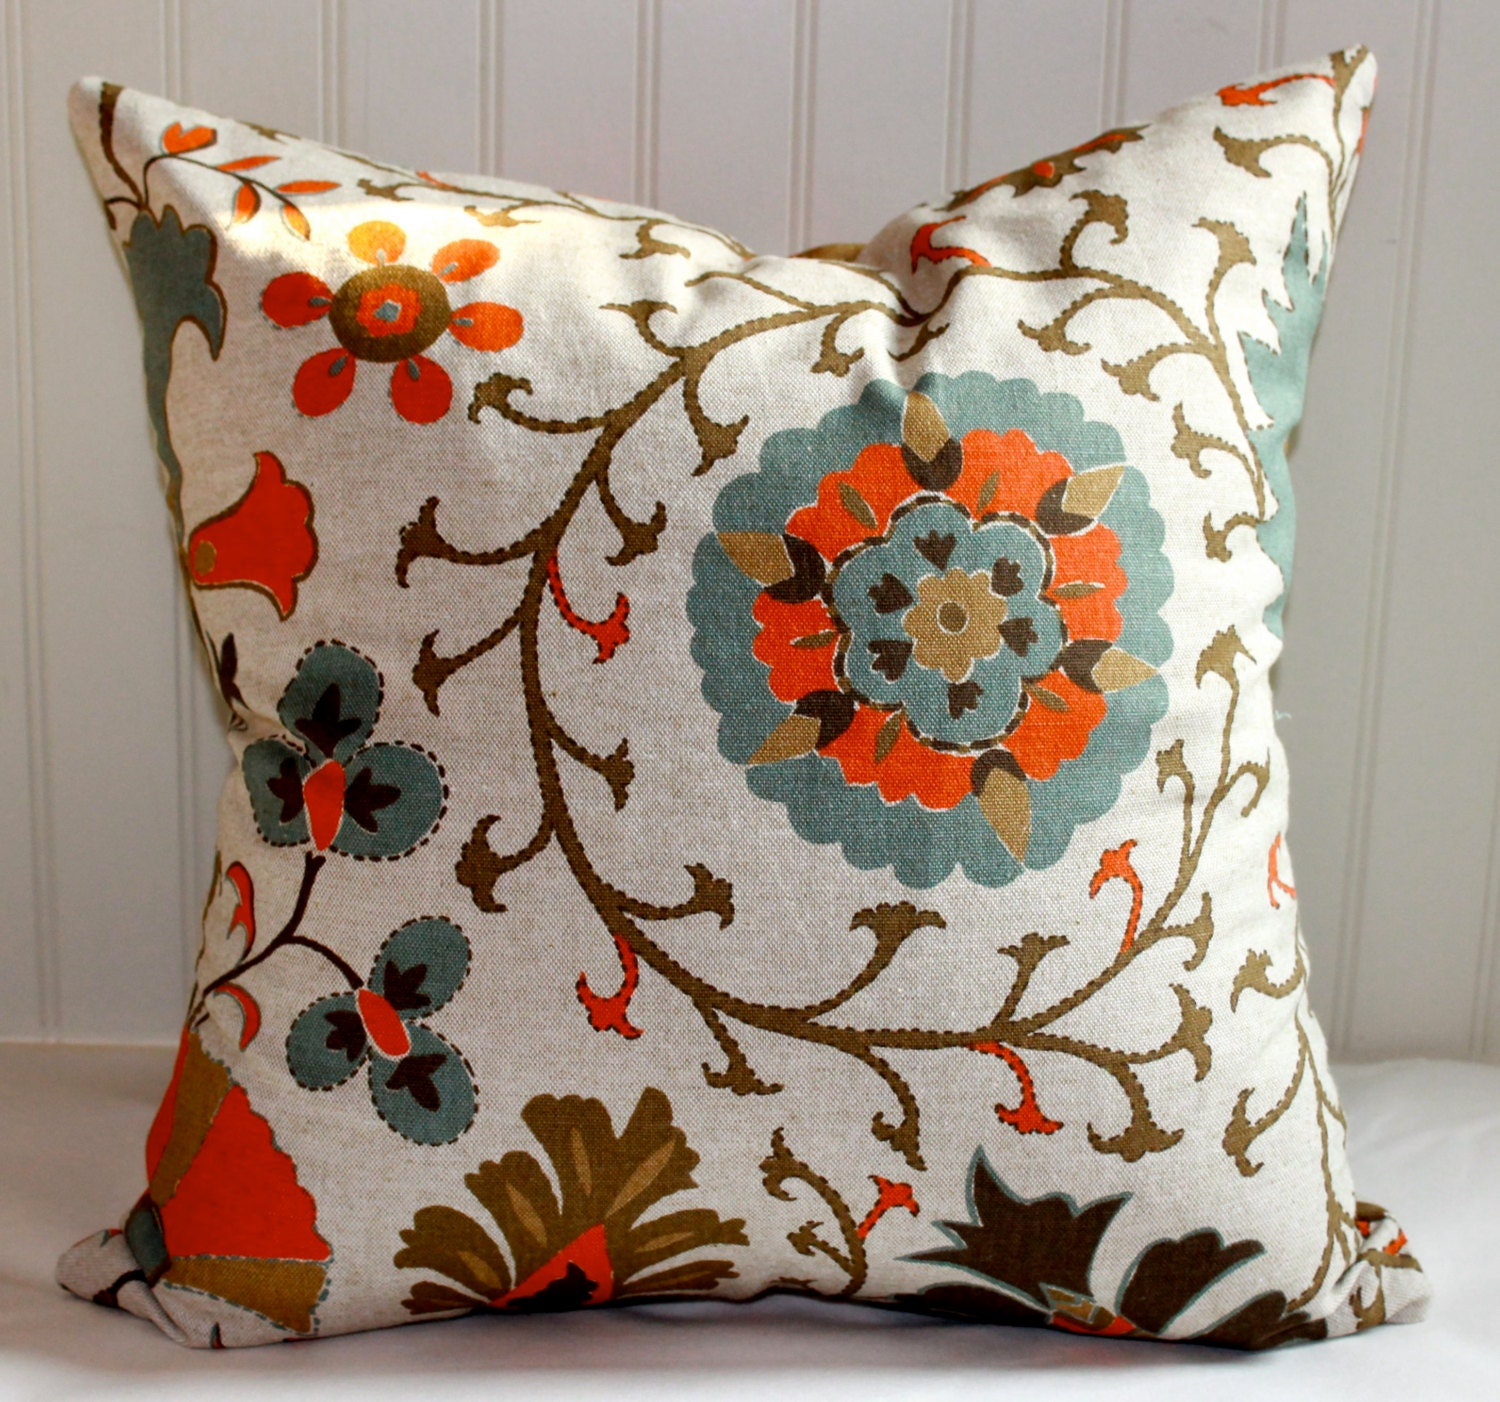 orange turquoise and brown floral pillow cover 18 x 18. Black Bedroom Furniture Sets. Home Design Ideas